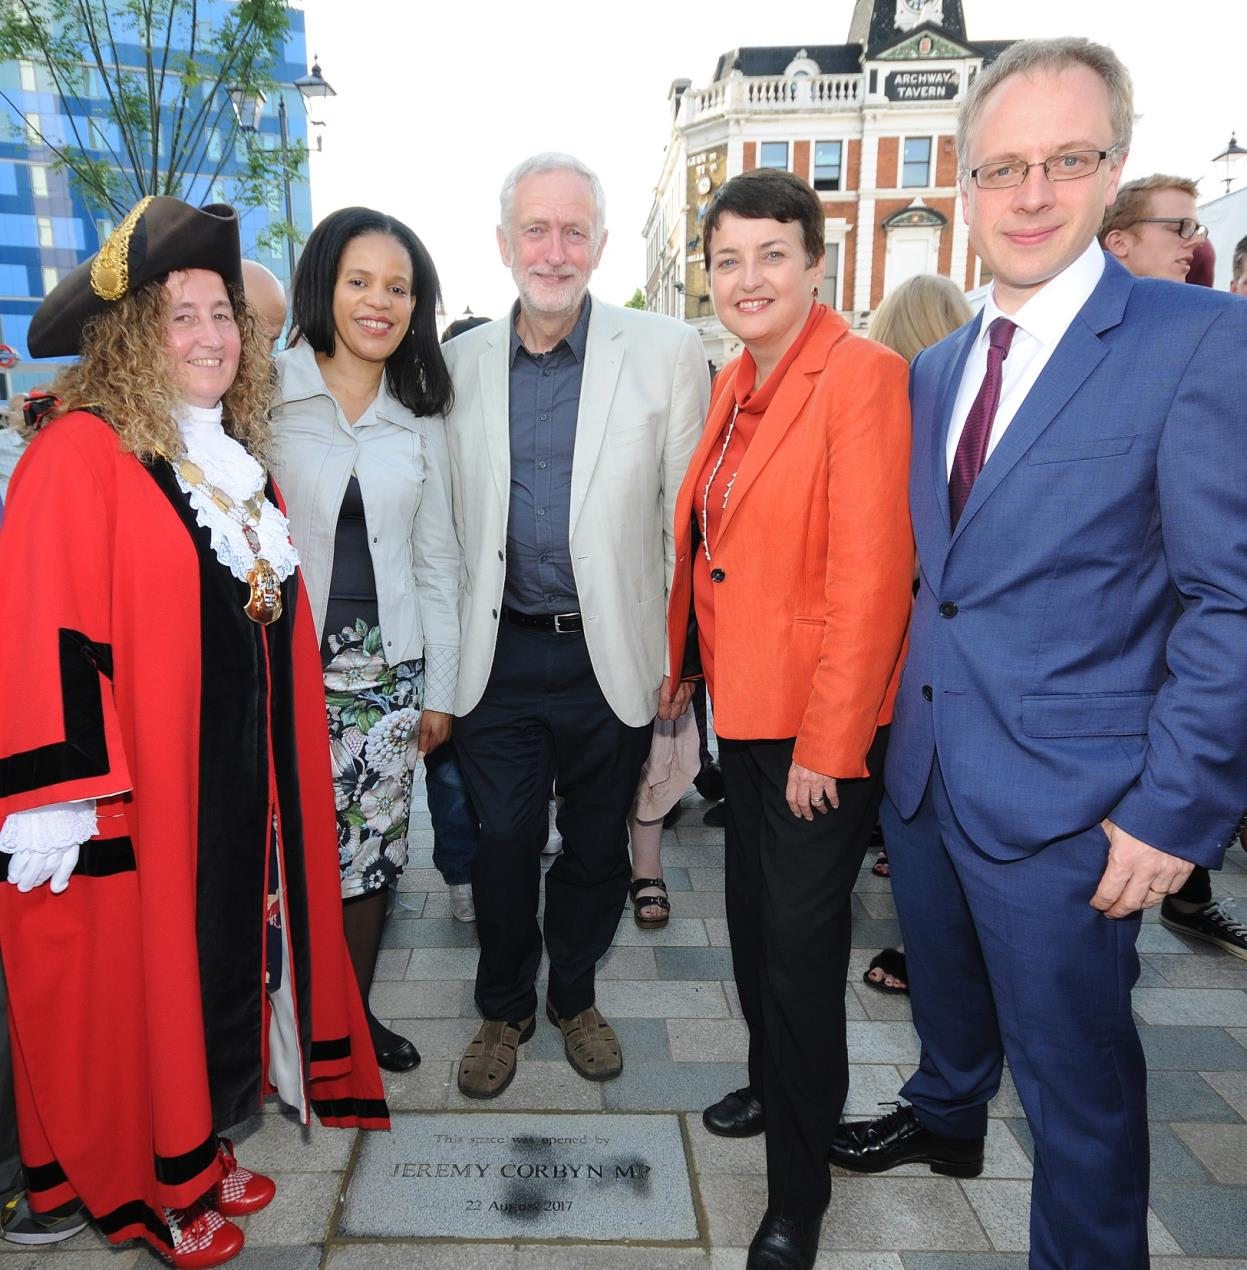 Opening of public space at Archway. From left: Islington Mayor Cllr Una O'Halloran, Cllr Claudia Webbe, Jeremy Corbyn MP, London Deputy mayor for Transport Val Shawcross and Islington Council leader Cllr Richard Watts.